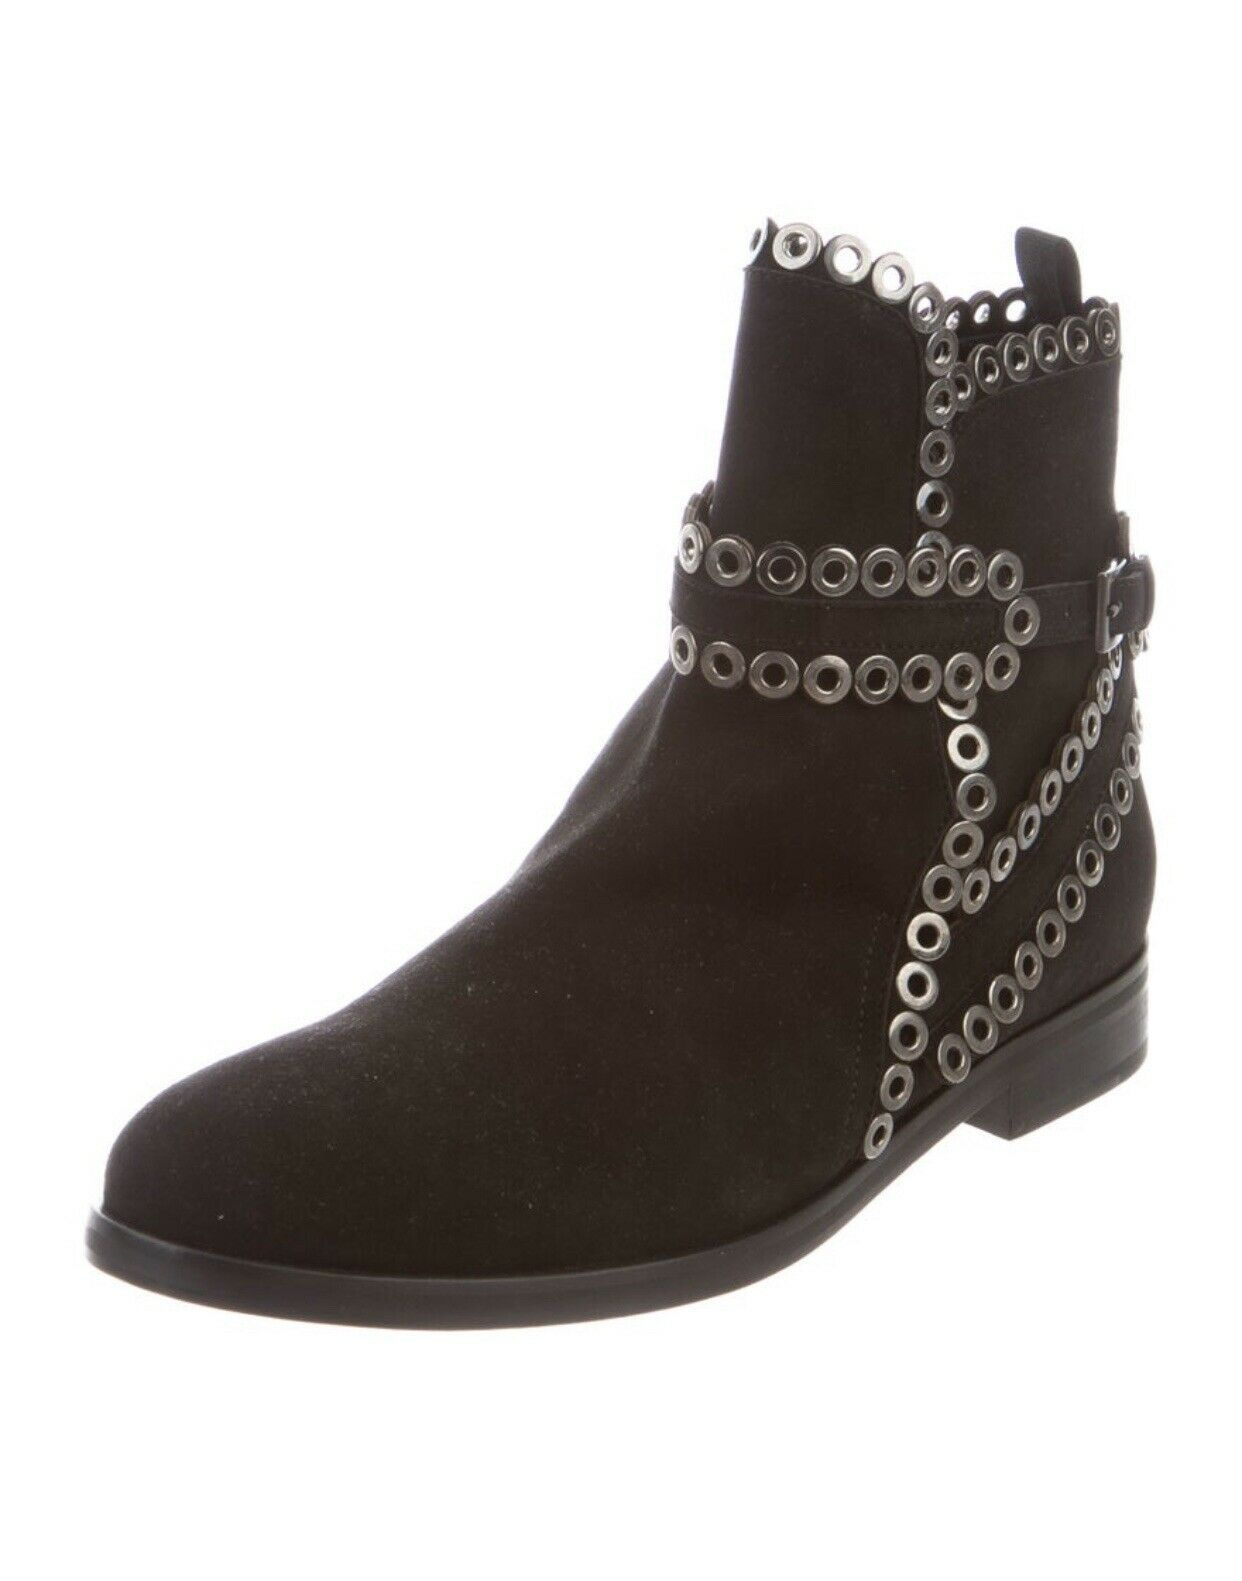 AZZEDINE ALAIA Black Suede Grommet Ankle Boots Si… - image 2